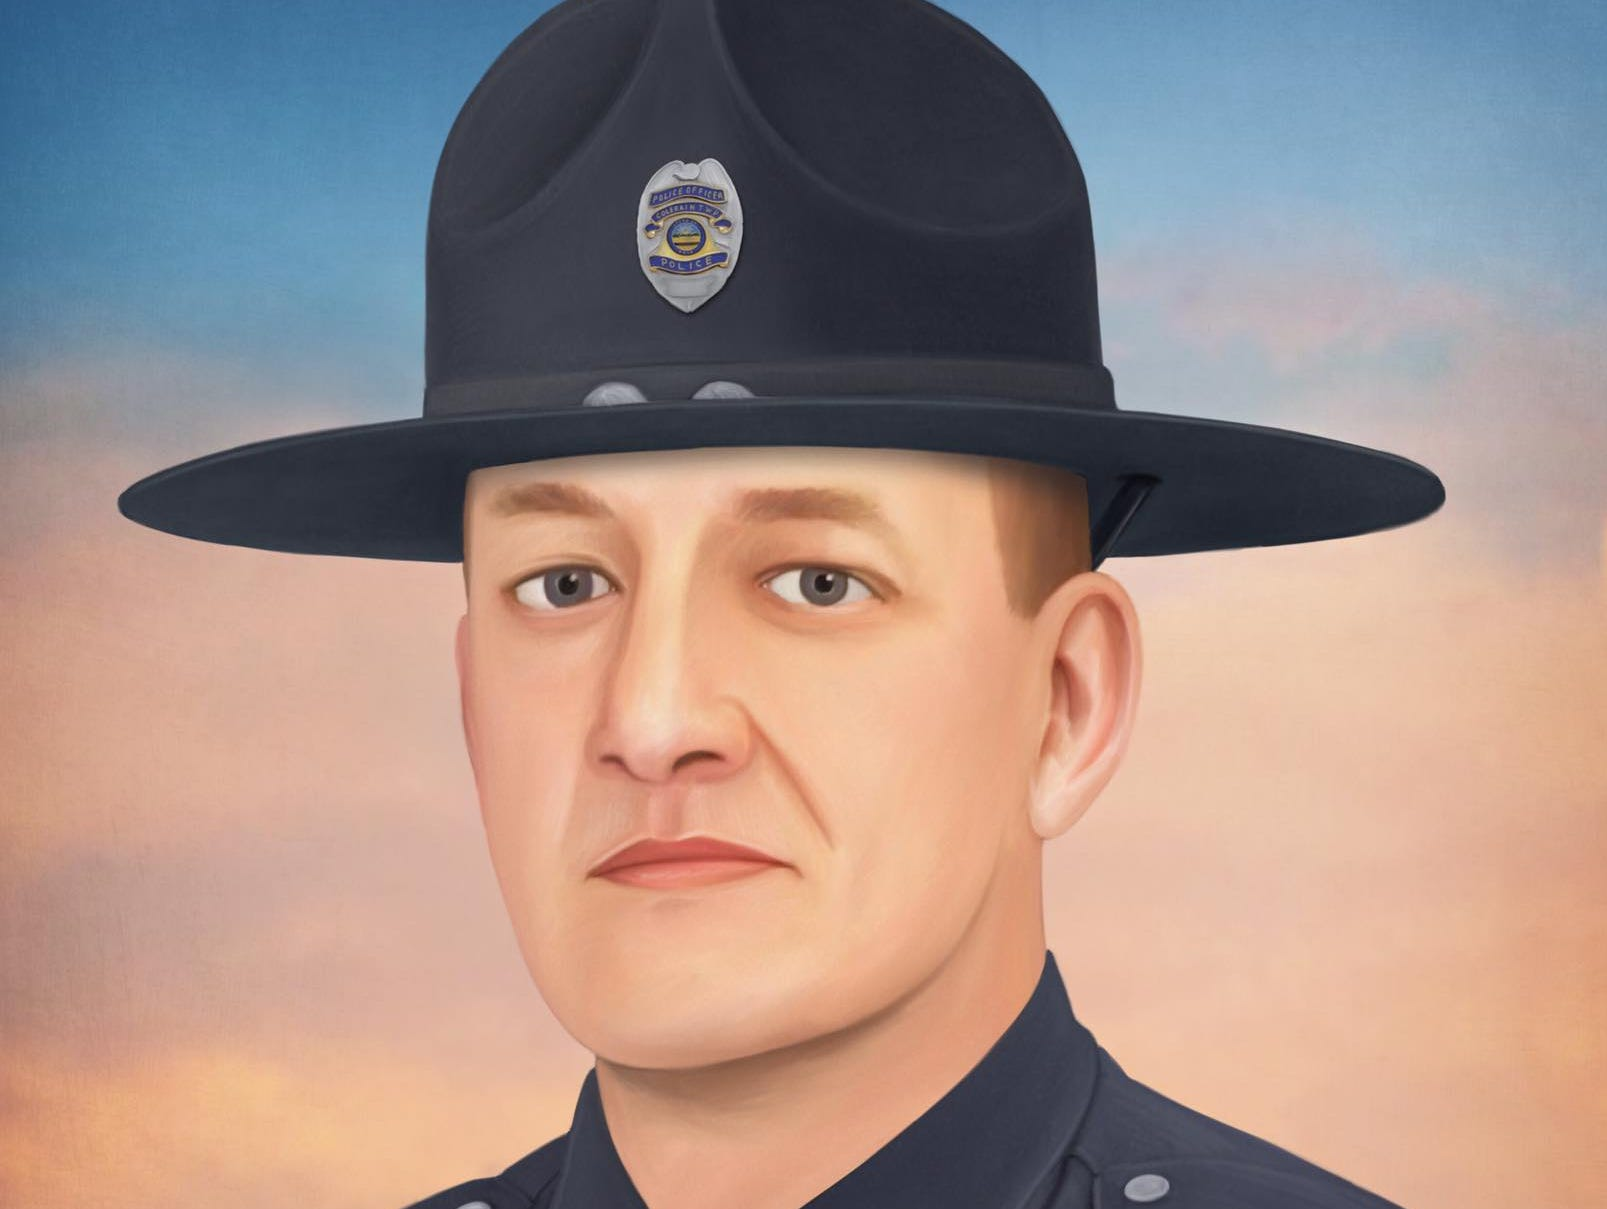 On January 4th, Colerain Township (Ohio) Police Officer Dale Woods was moving traffic control devices on the scene of a previous auto accident when he was struck by an oncoming pickup truck. Dale was transported to the hospital where he fought for 3 days before eventually succumbing to his injuries. 